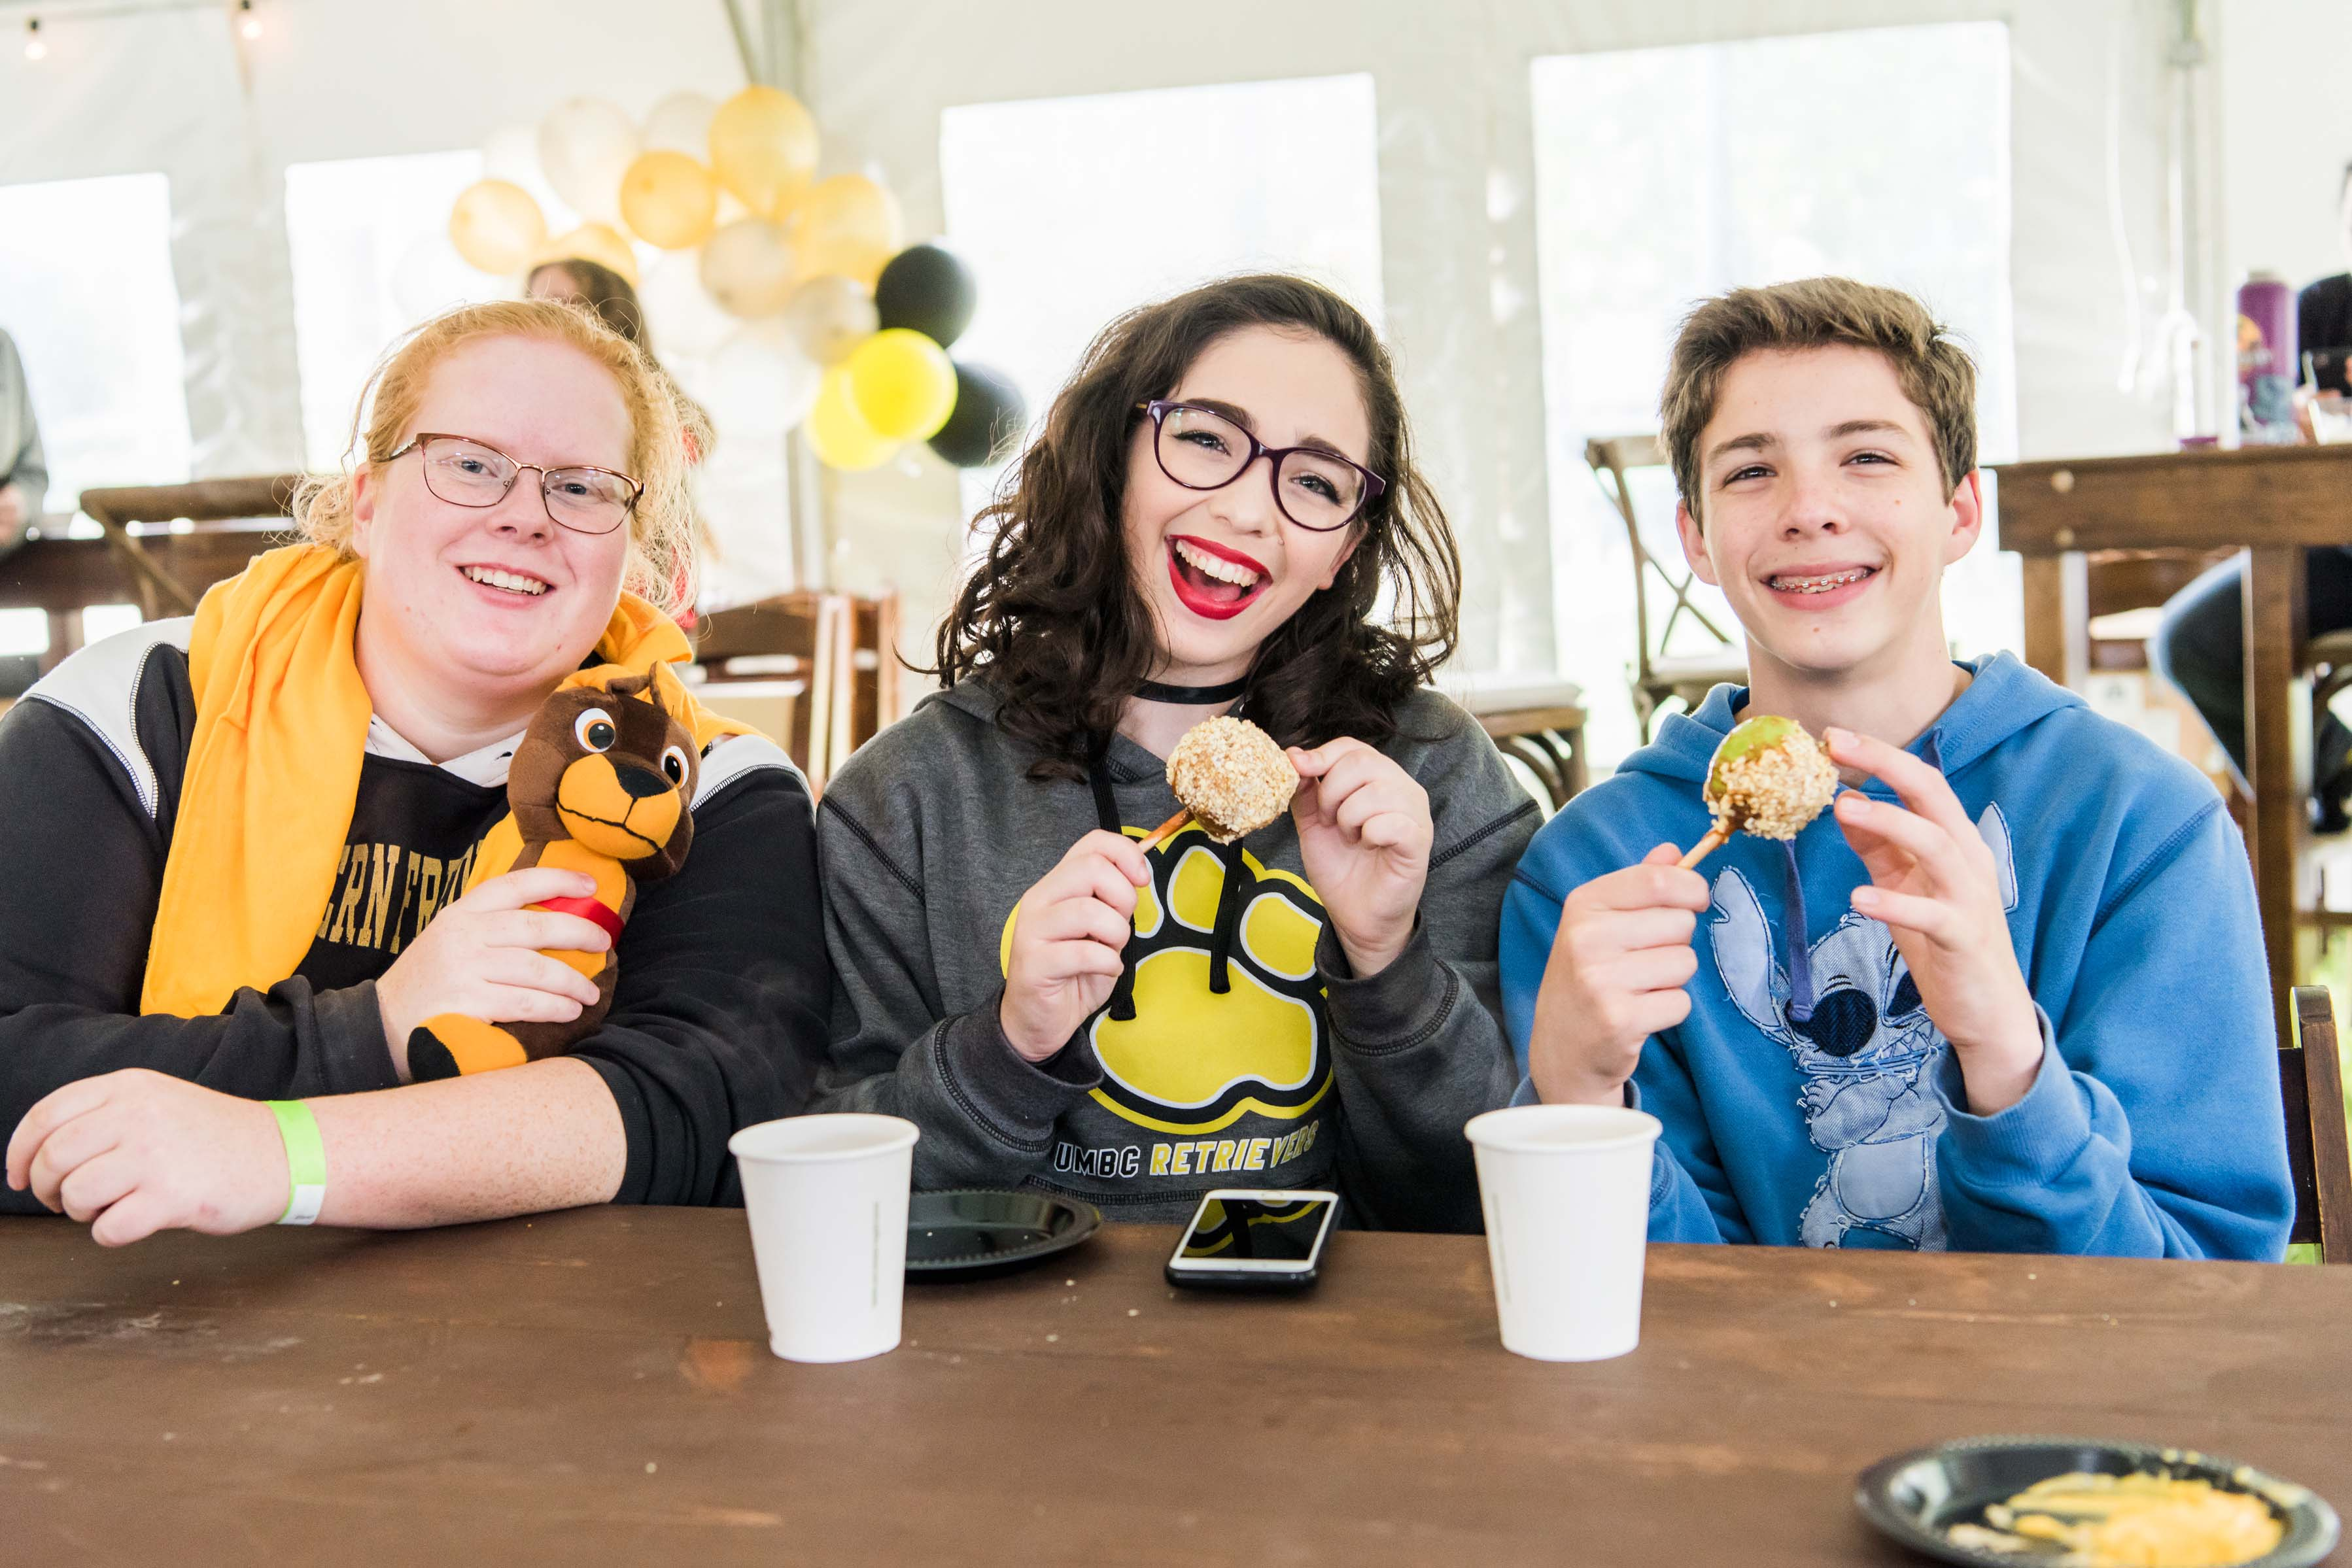 Students pose with tiny candy apples under tent